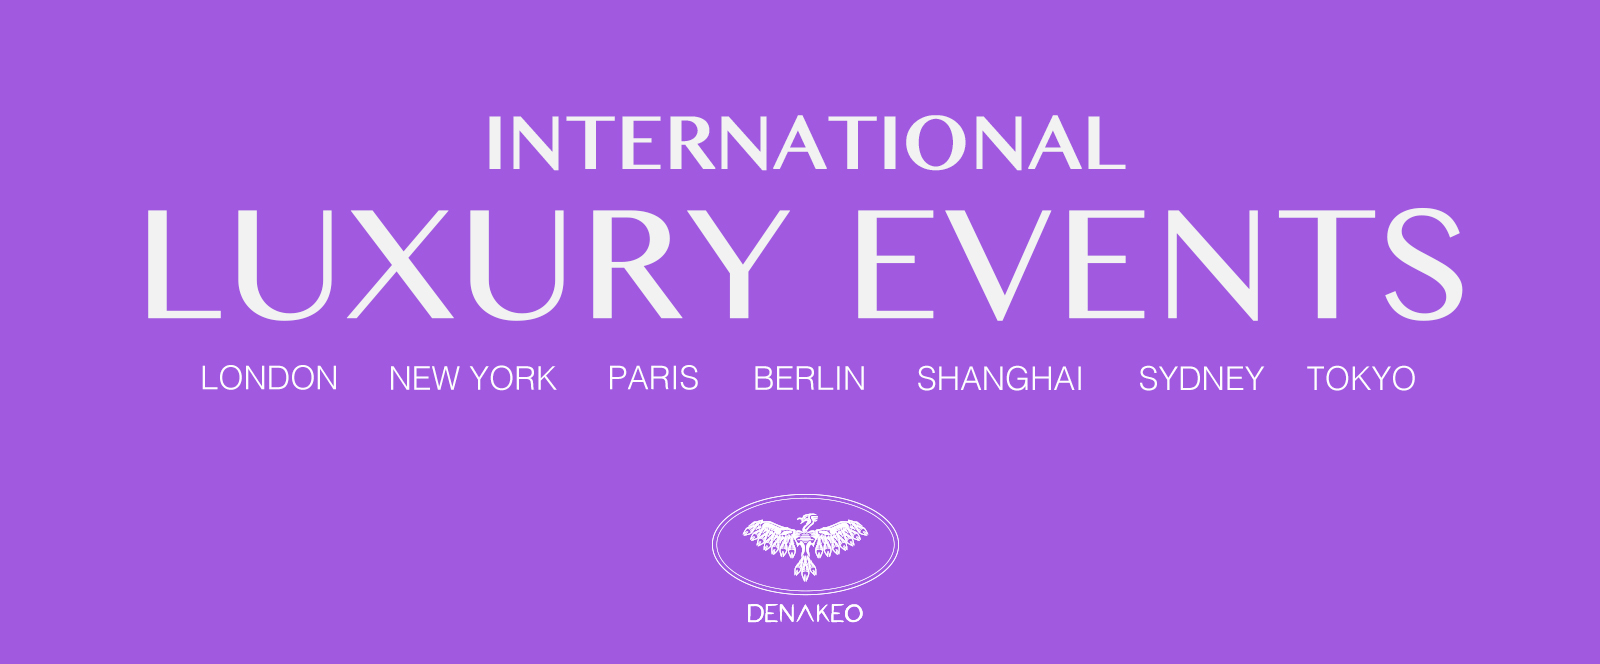 International luxury events B